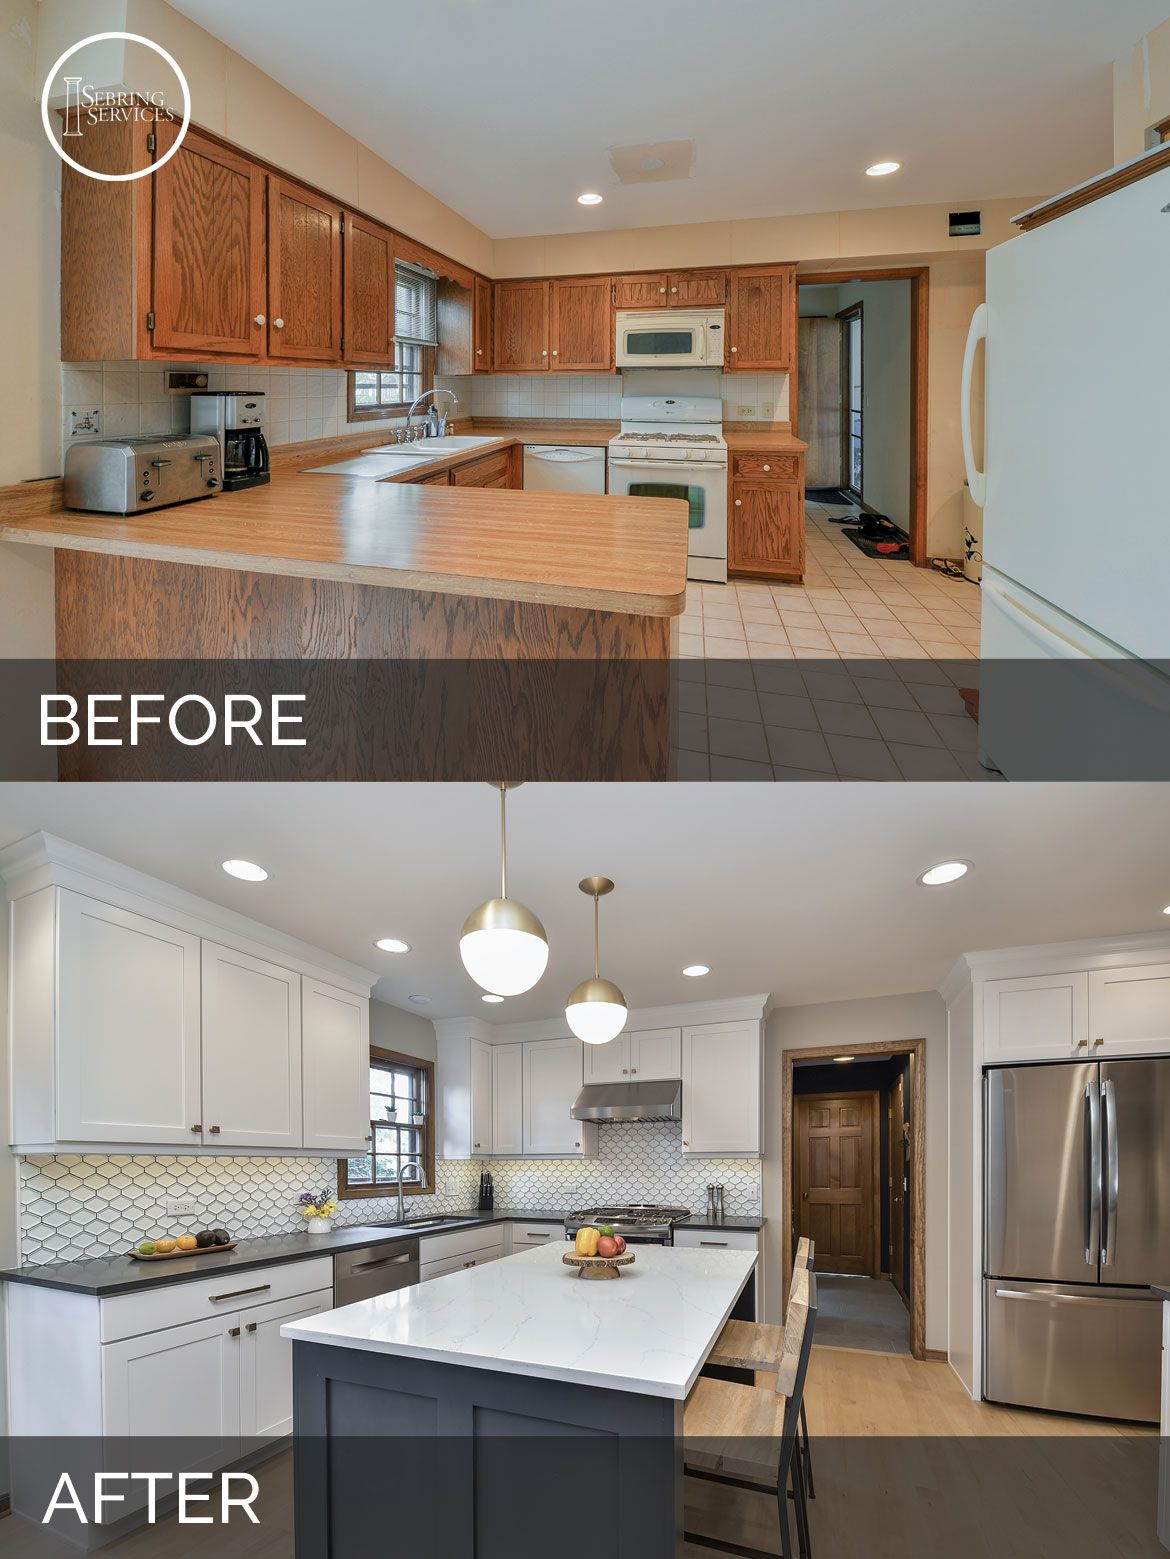 Before and after kitchen remodeling naperville sebring for Kitchen remodel before after